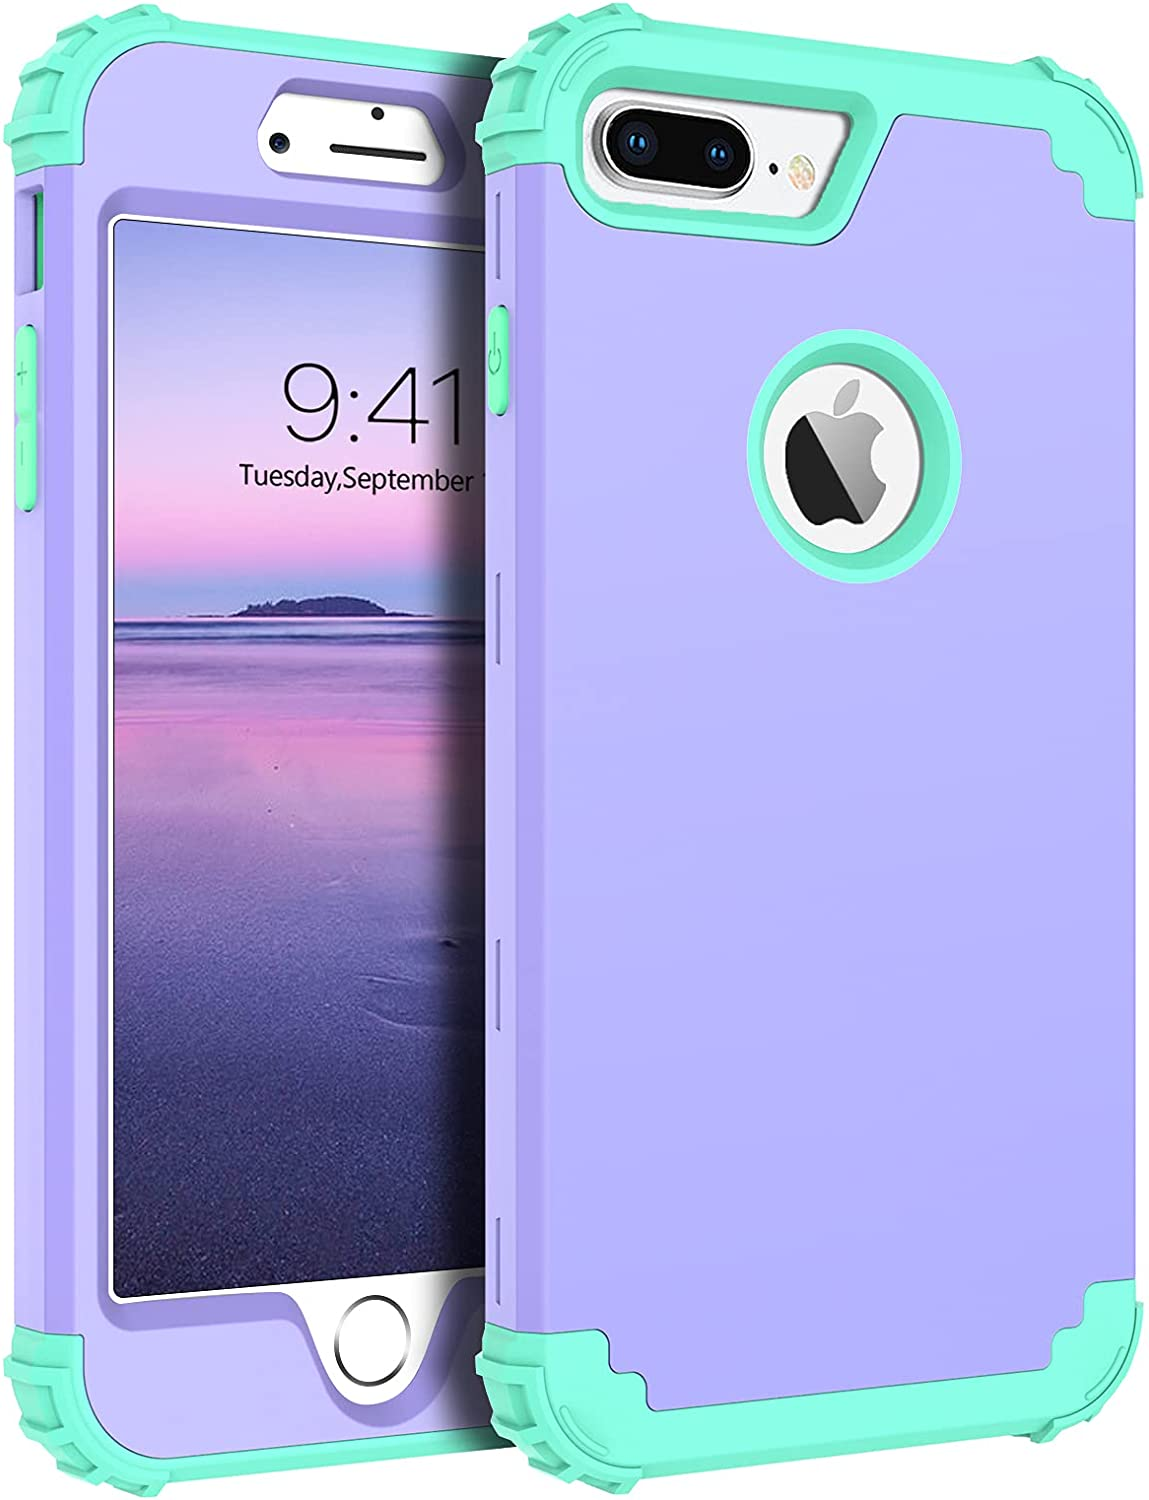 BENTOBEN Case for iPhone 8 Plus, iPhone 7 Plus Case, 3 in 1 Hybrid Hard Plastic Soft Rubber Heavy Duty Rugged Bumper Shockproof Full-Body Protective Phone Cover for iPhone 8 Plus/7 Plus, Purple/Green